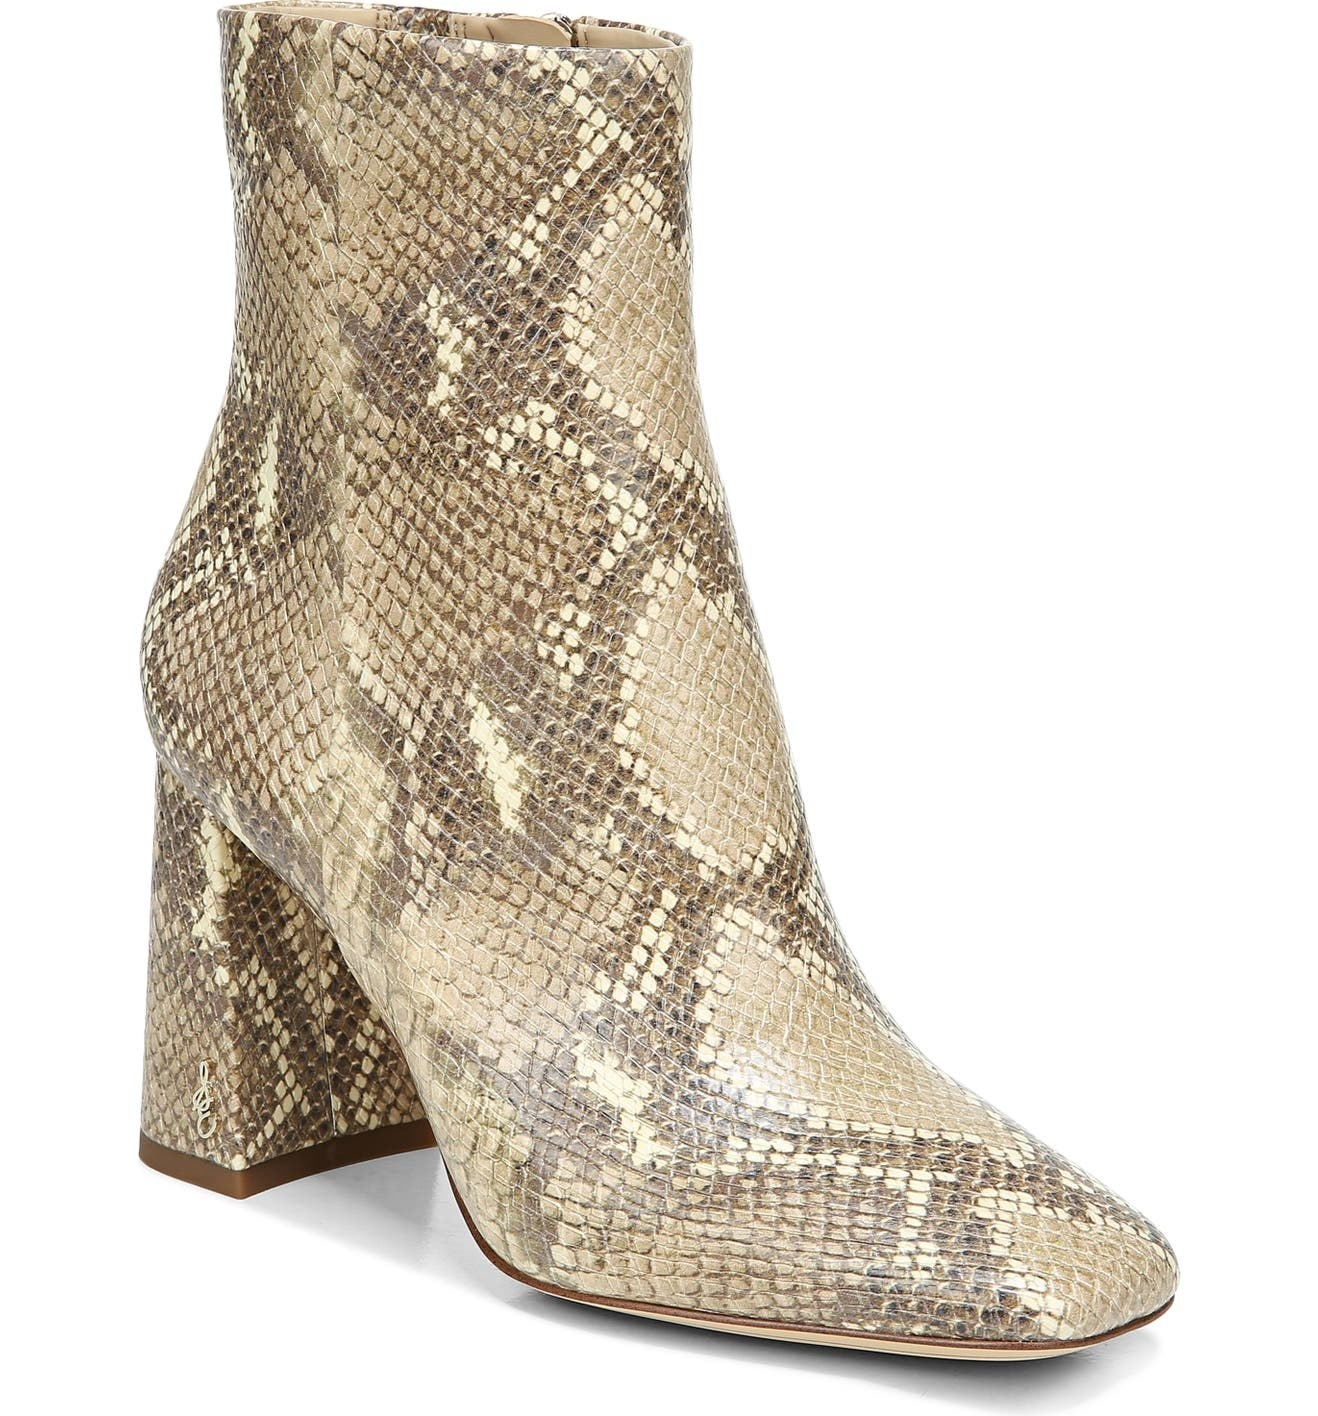 faux snake skin booties with a thick heel